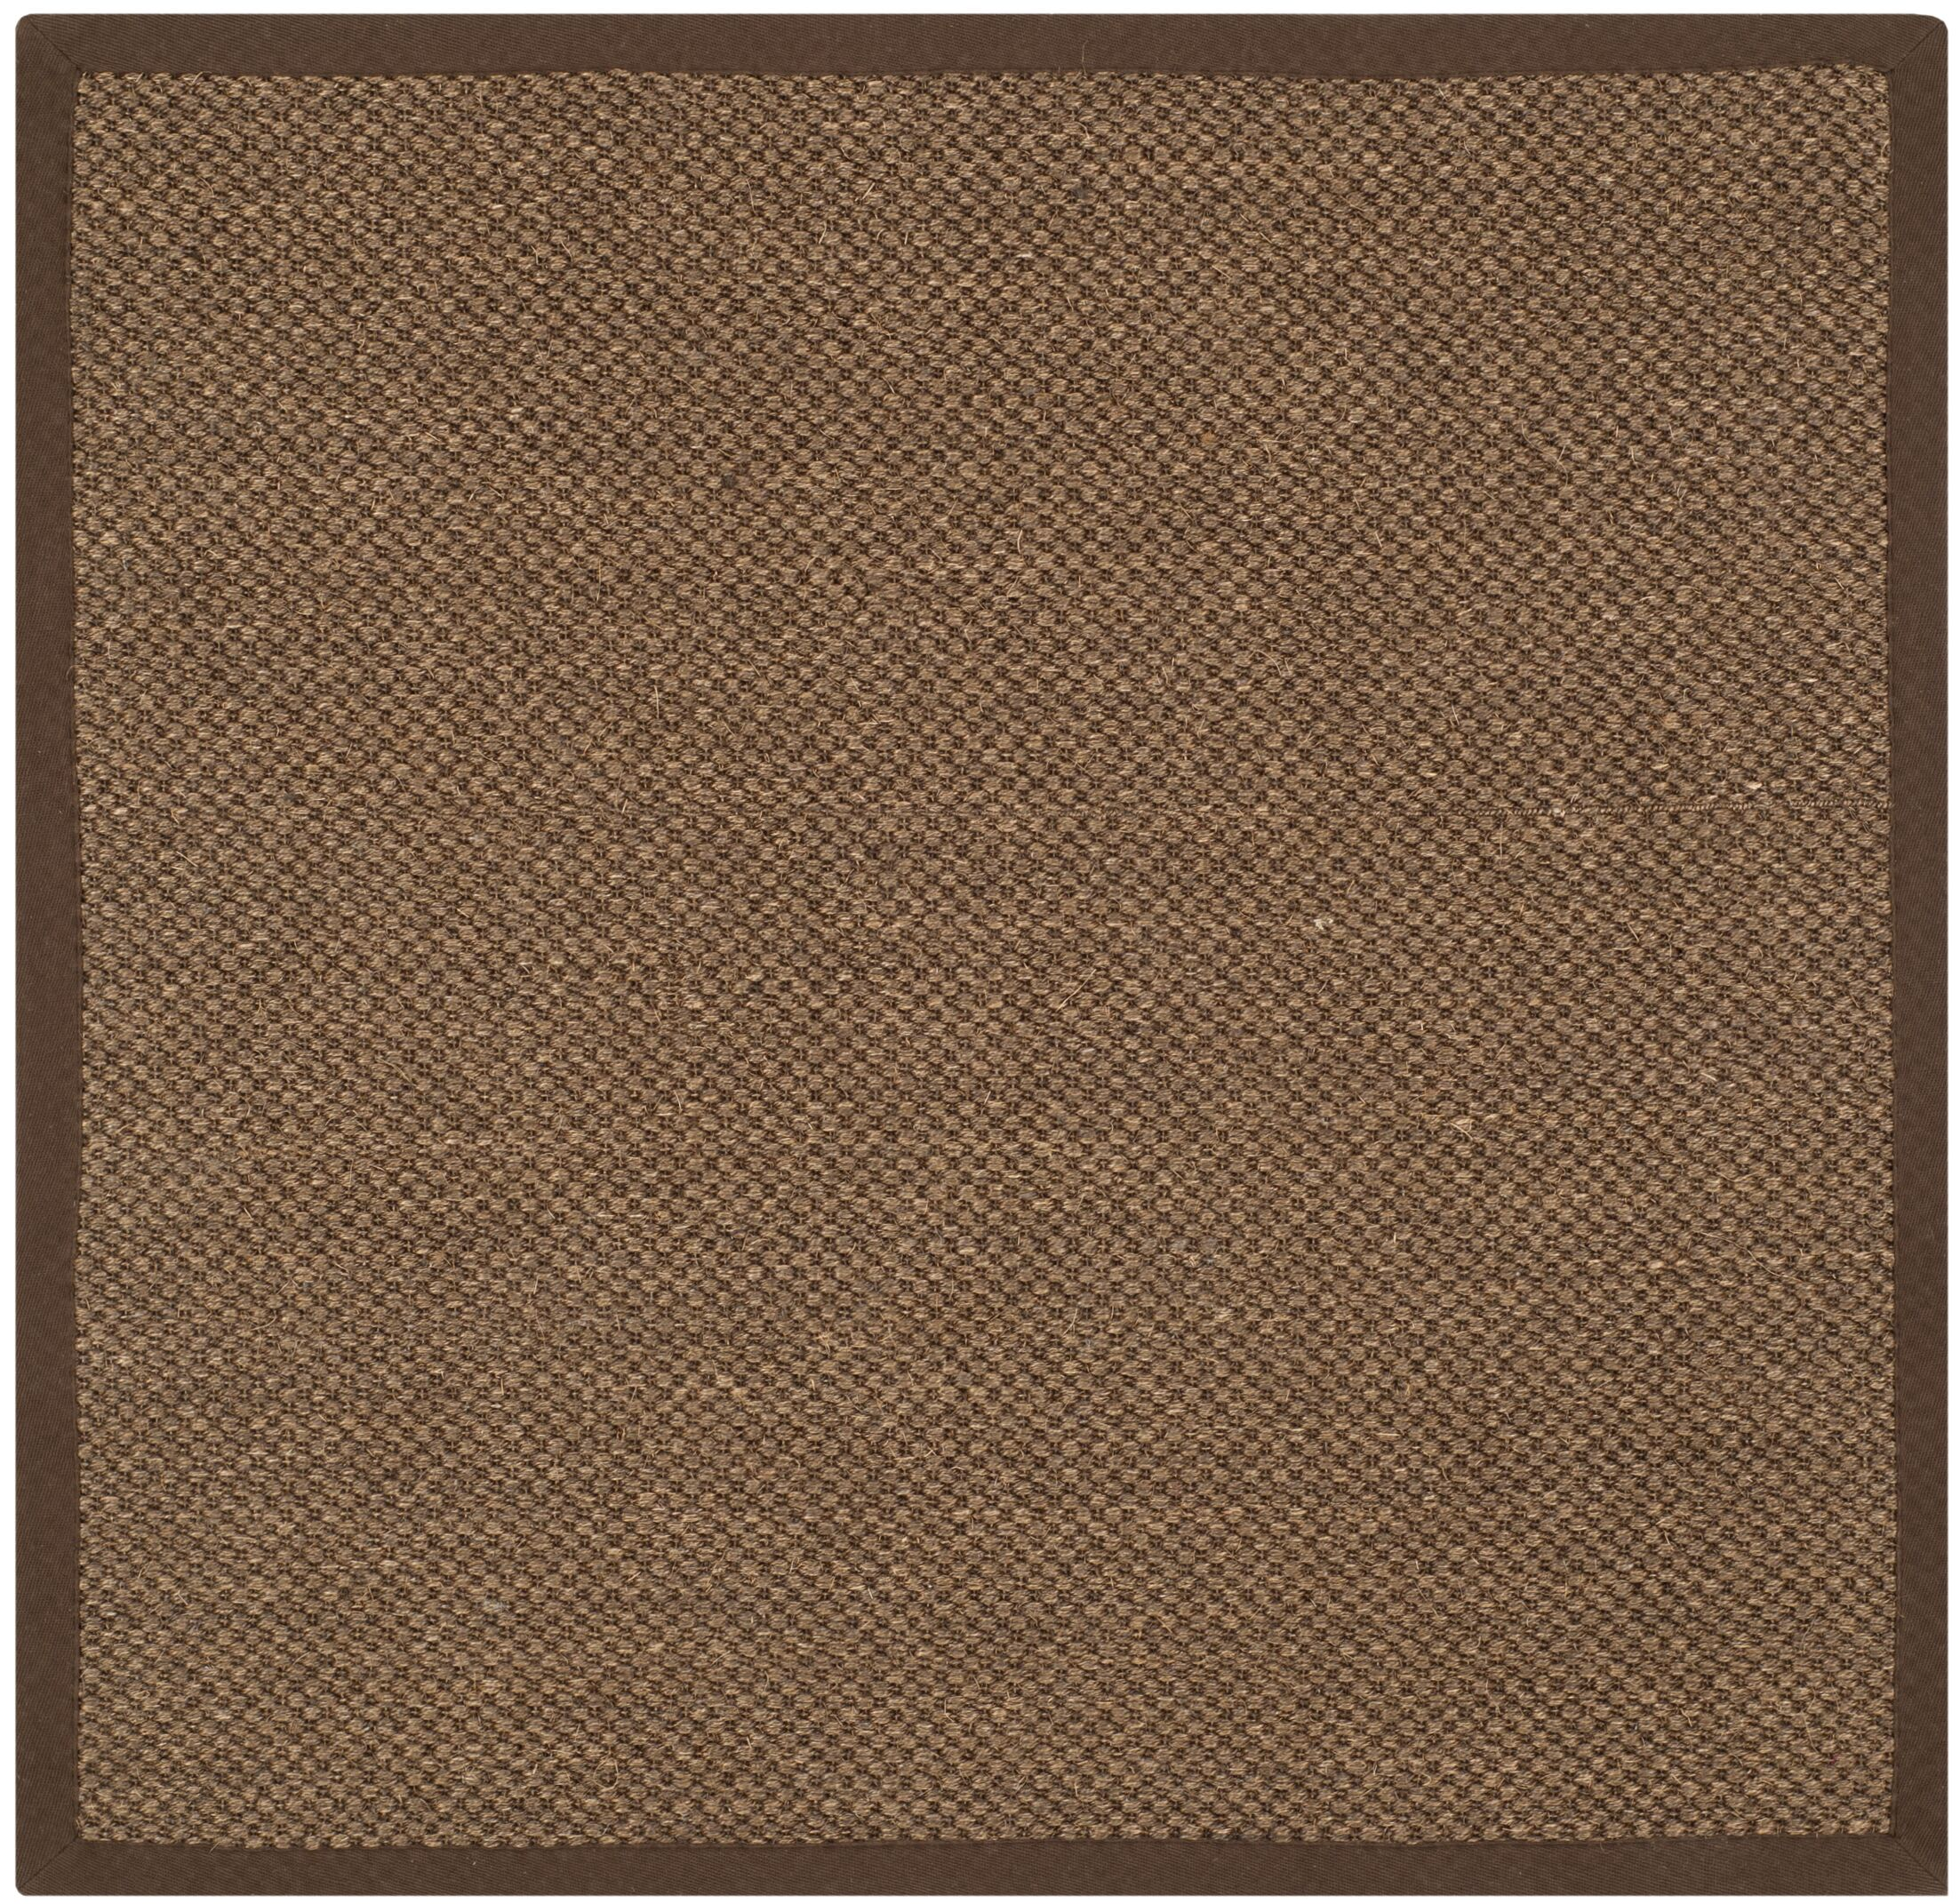 Greene Hand-Woven Brown Area Rug Rug Size: Square 4'